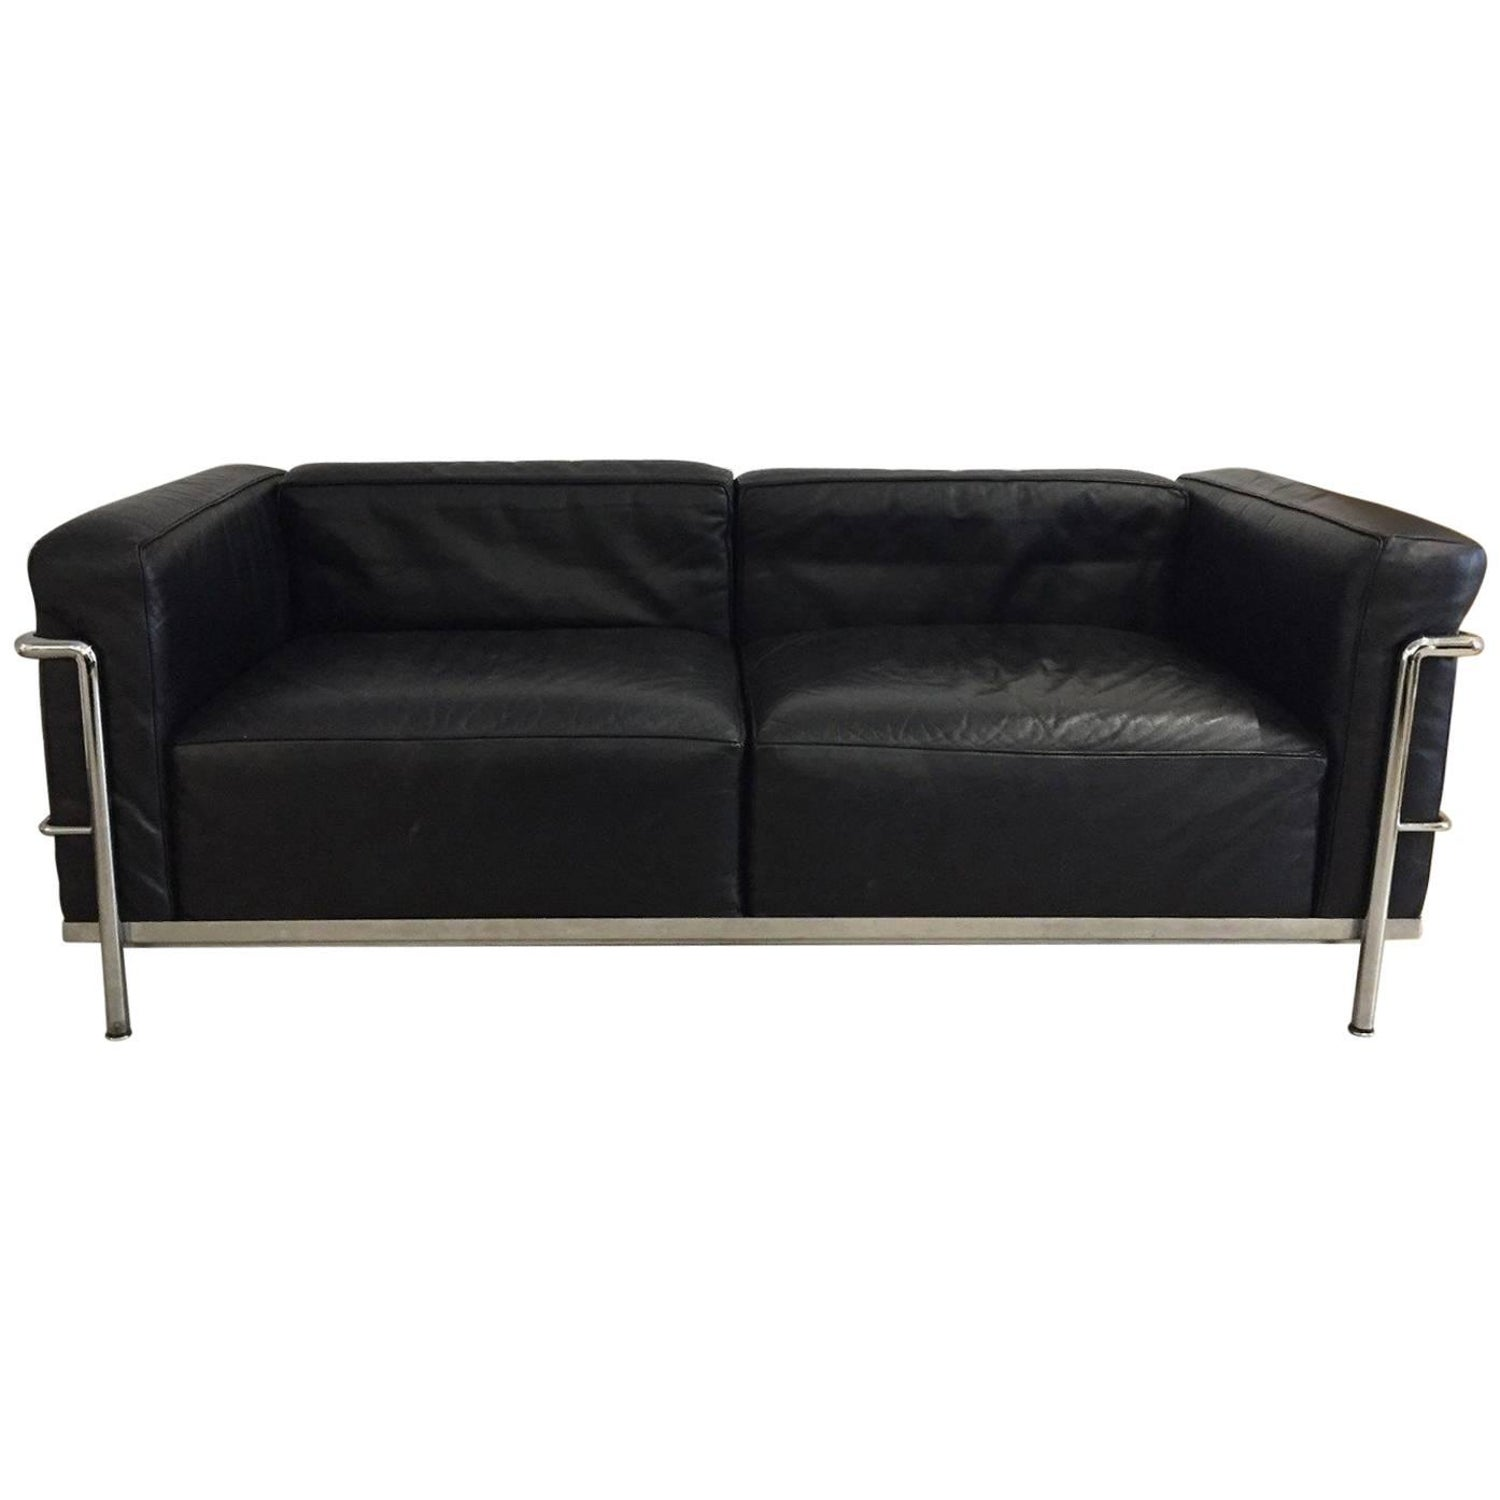 Pair of LC3 Le Corbusier Black Poltrona Lounge Chairs For Sale at ...